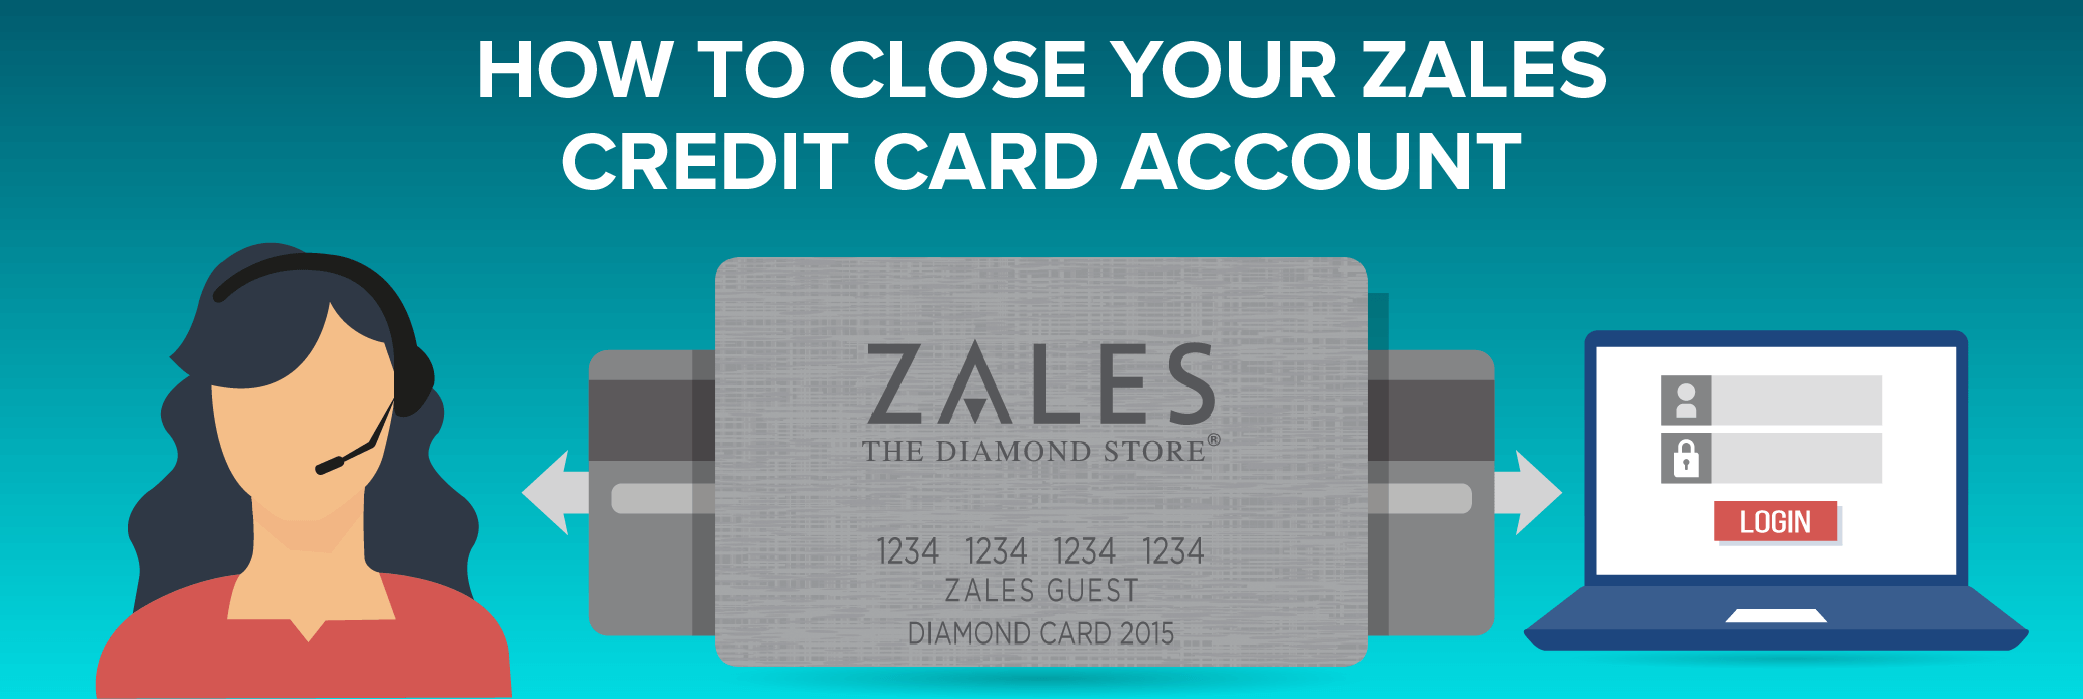 Zales Credit Card Review Is It Worth It CreditLoancom